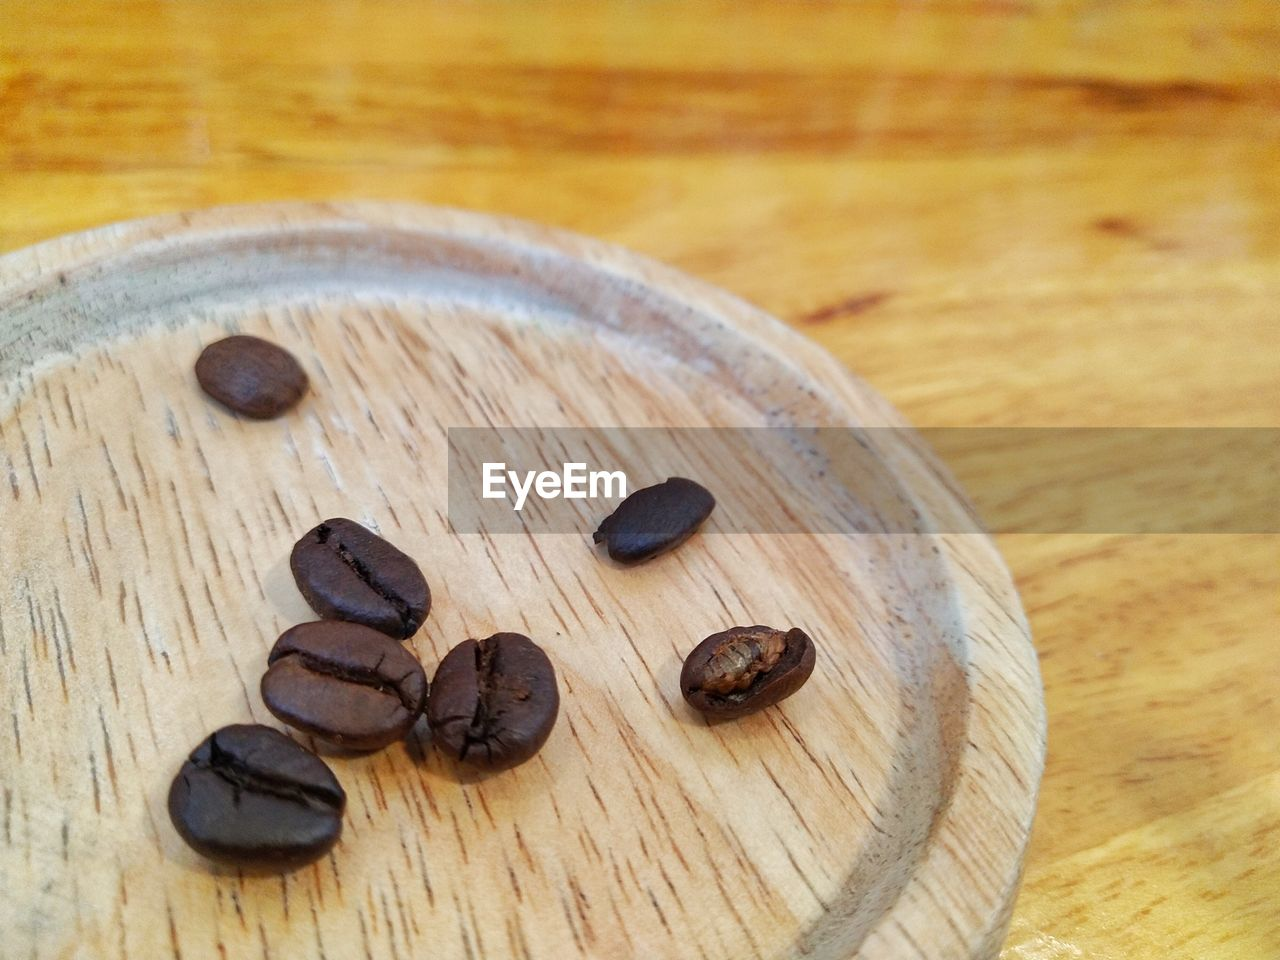 food, still life, food and drink, table, wood - material, indoors, close-up, freshness, brown, no people, focus on foreground, high angle view, roasted coffee bean, healthy eating, wellbeing, coffee - drink, nut - food, nut, coffee, group of objects, caffeine